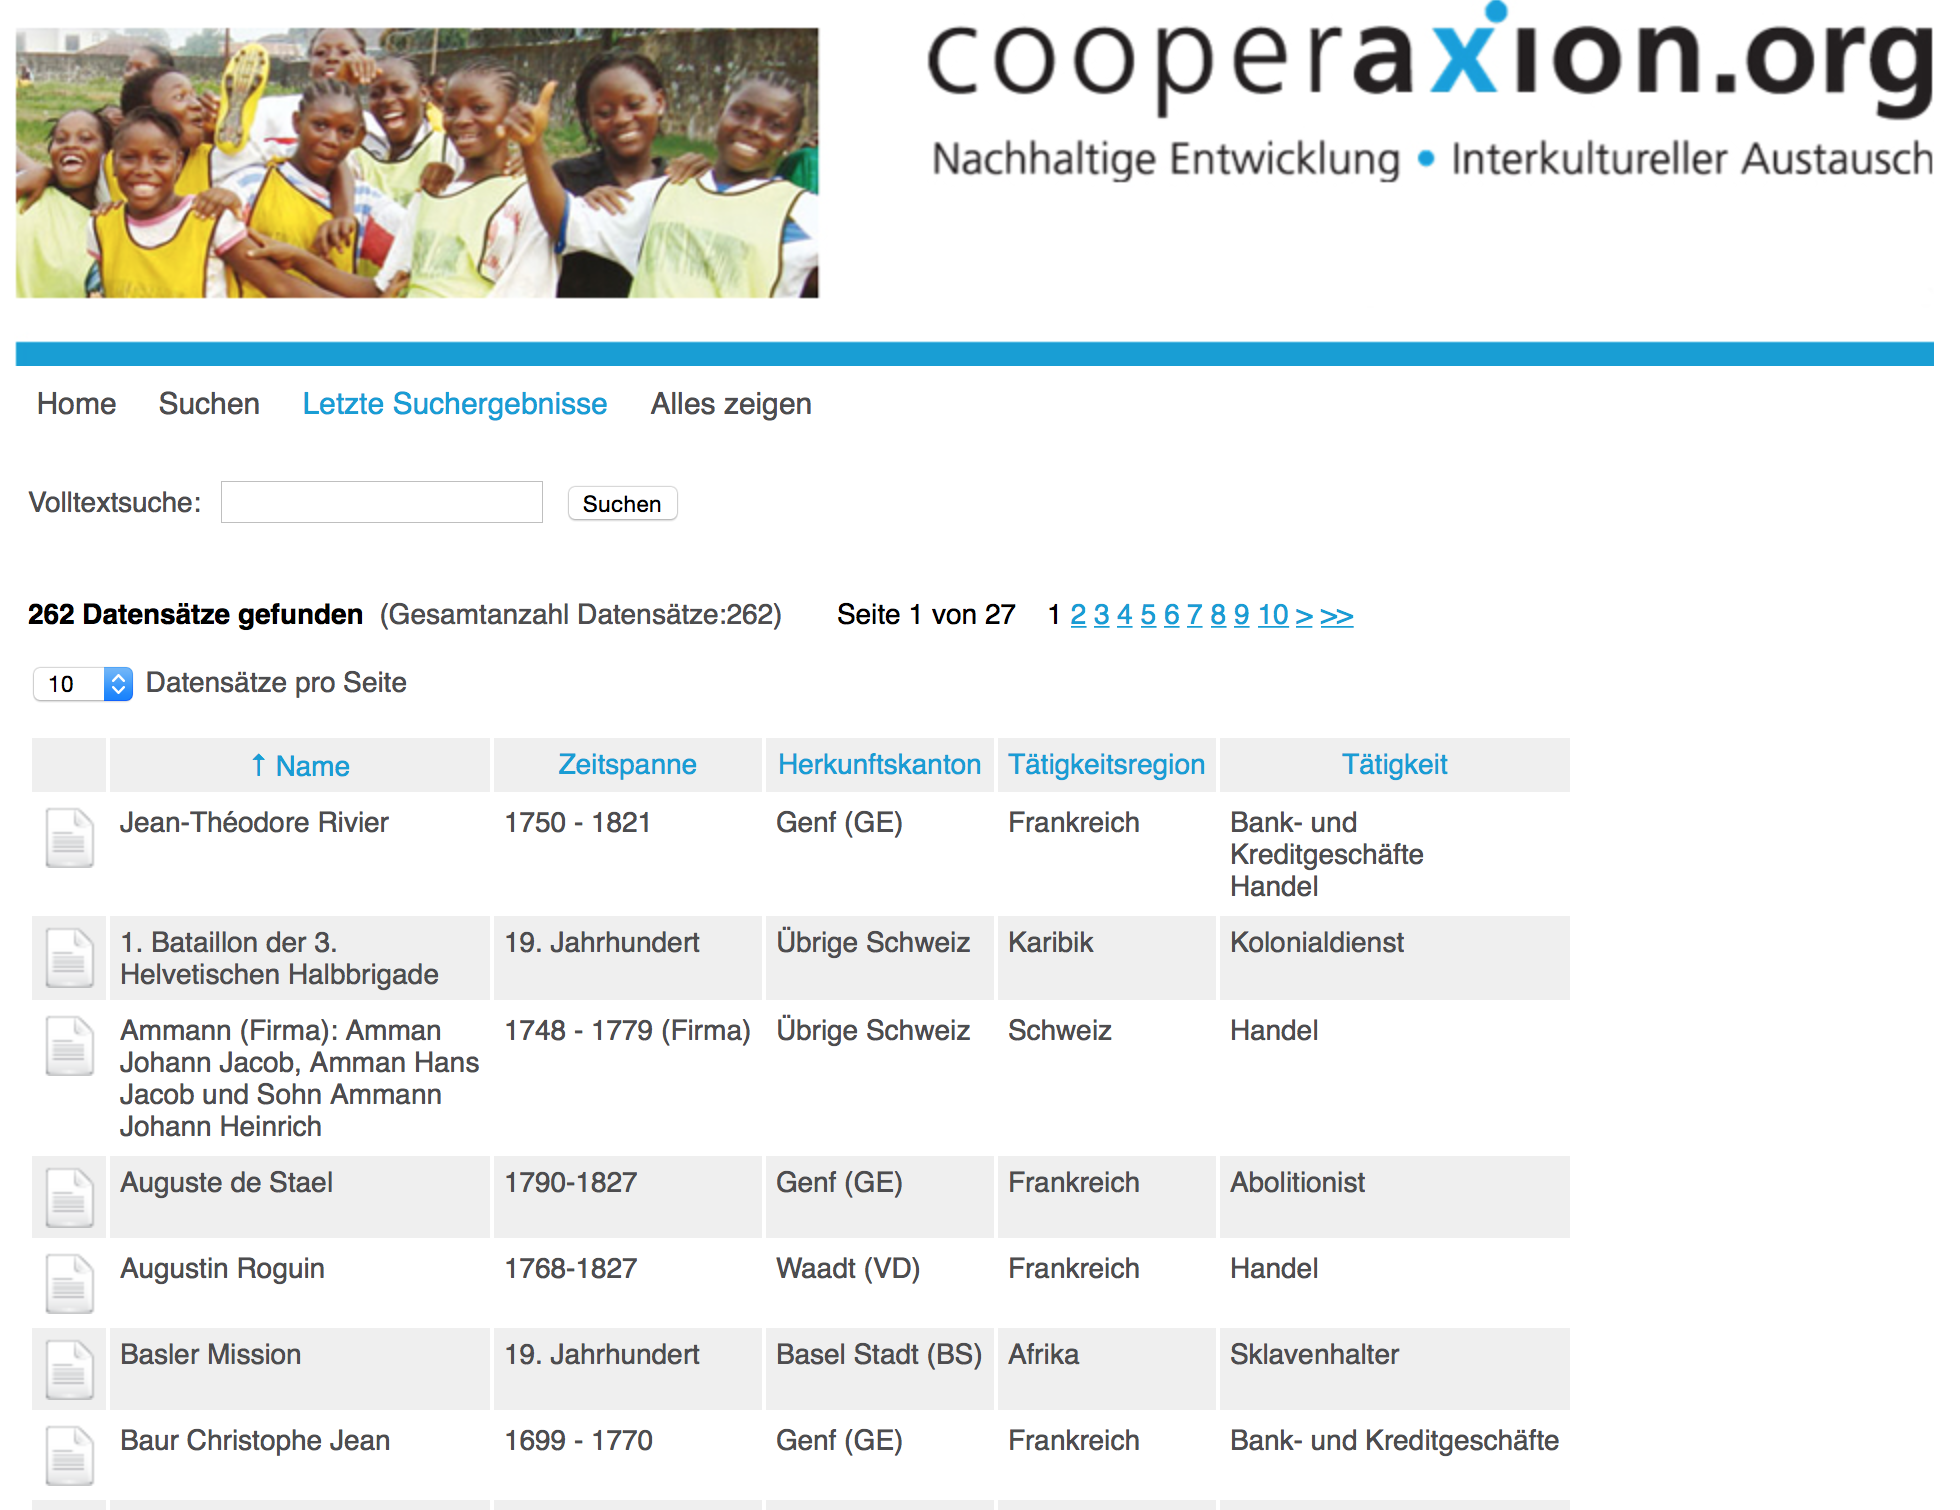 Cooperaxion